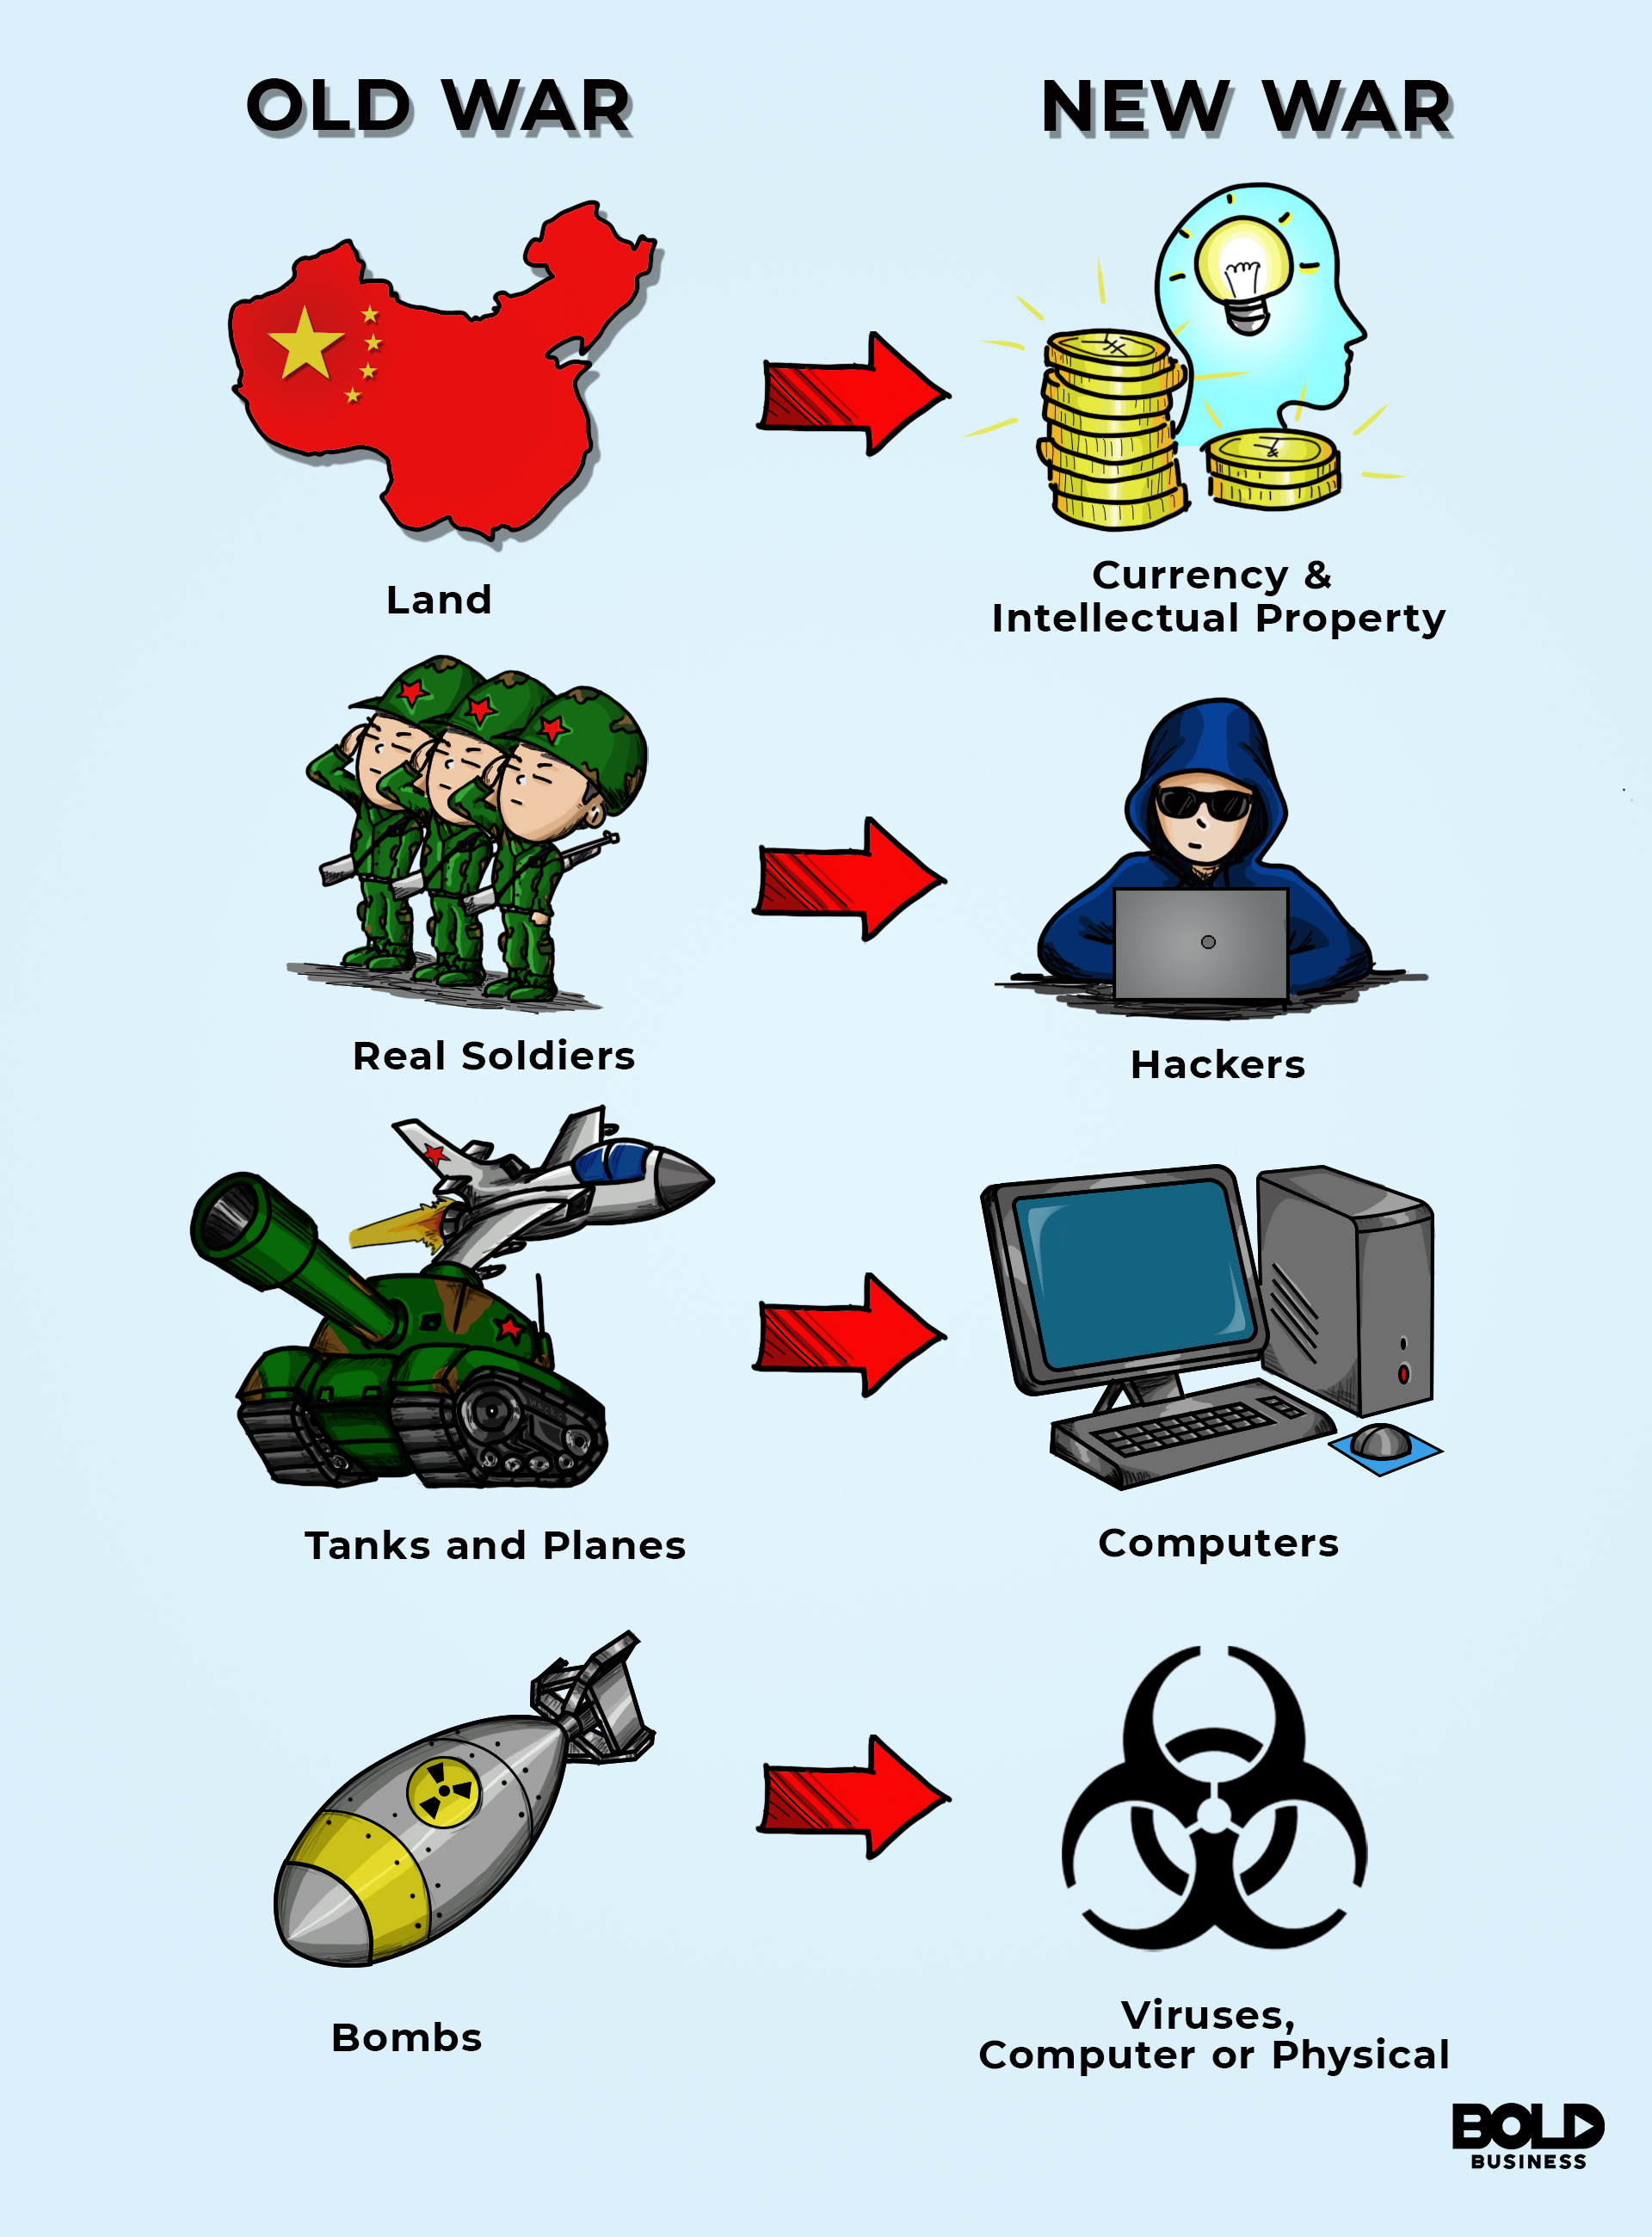 A cartoon of the comparisons between old war and new war